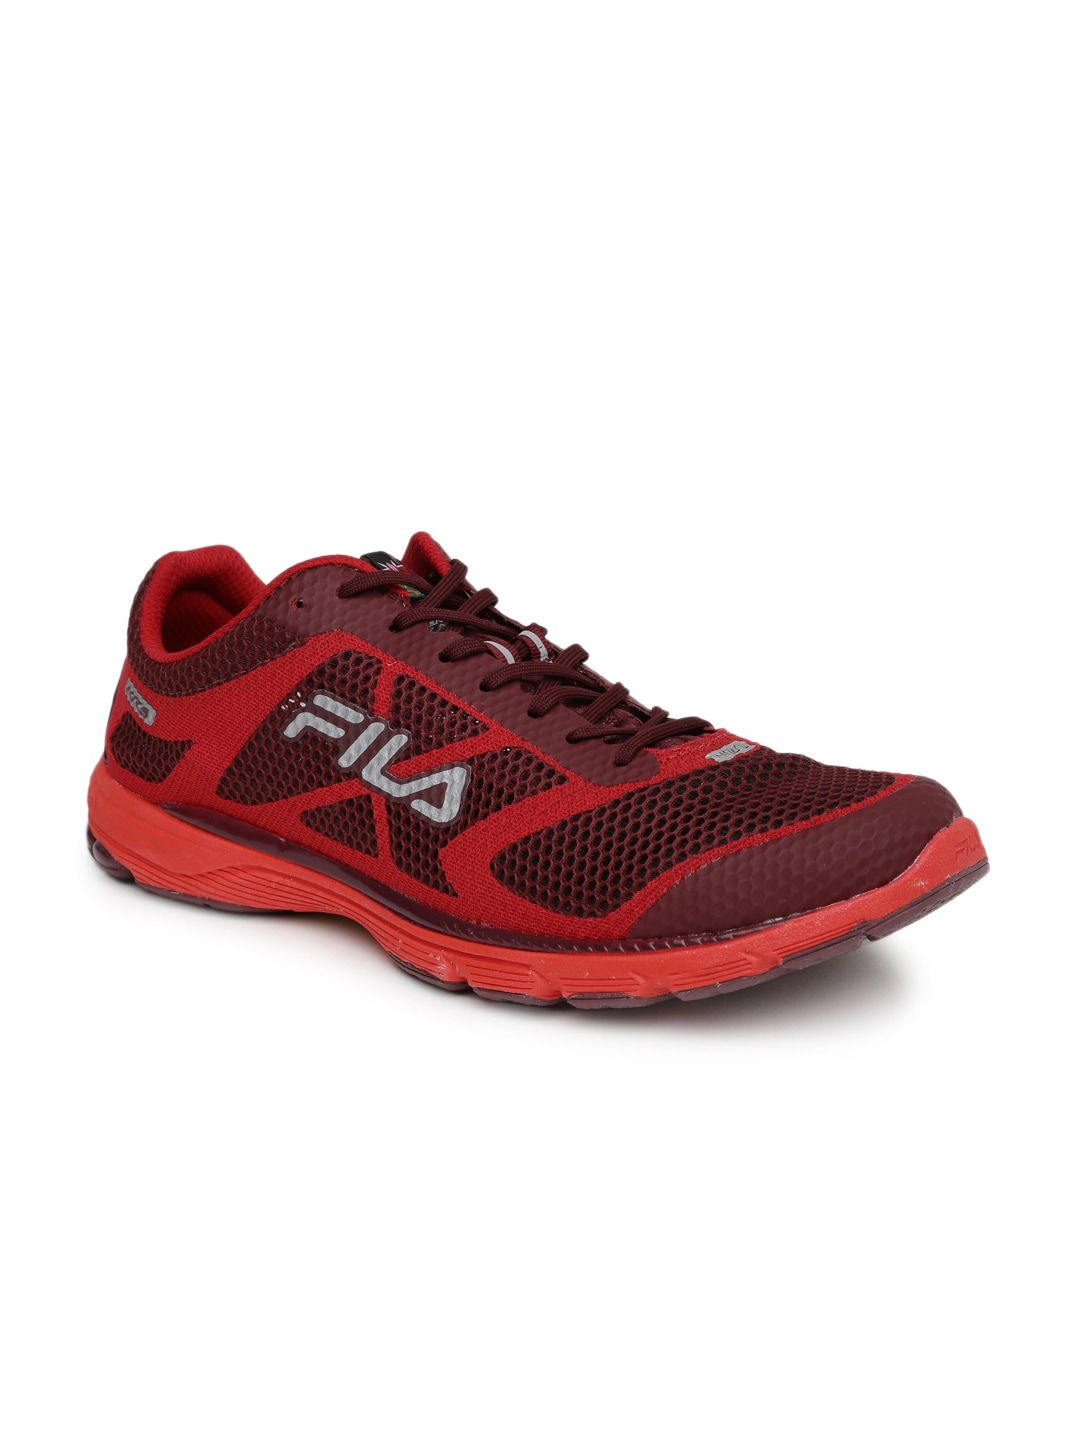 buy fila kr3 running shoes sports shoes for